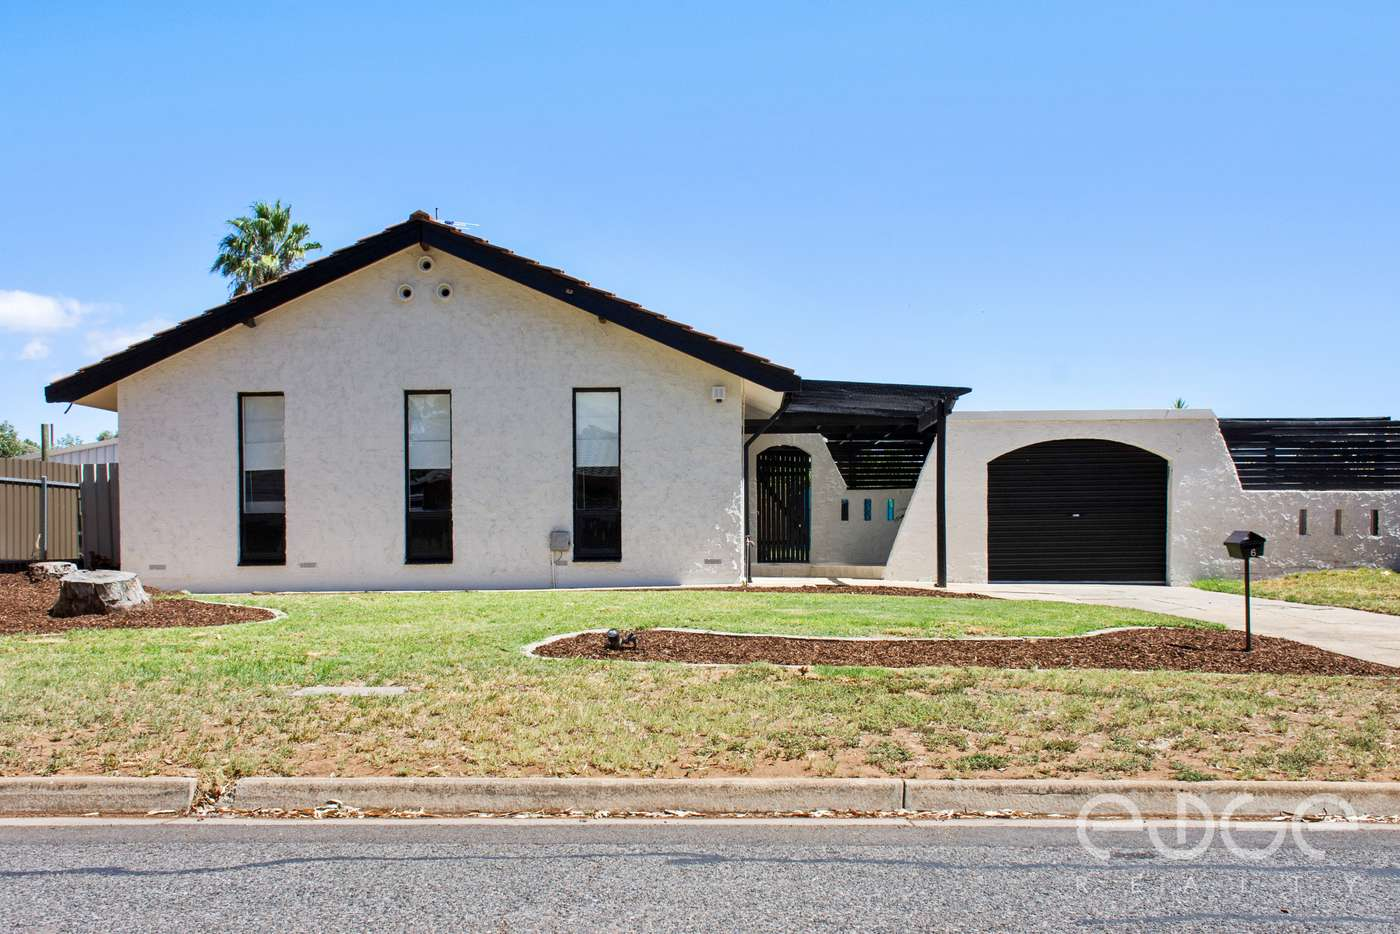 Main view of Homely house listing, 6 Bernadette Street, Paralowie SA 5108